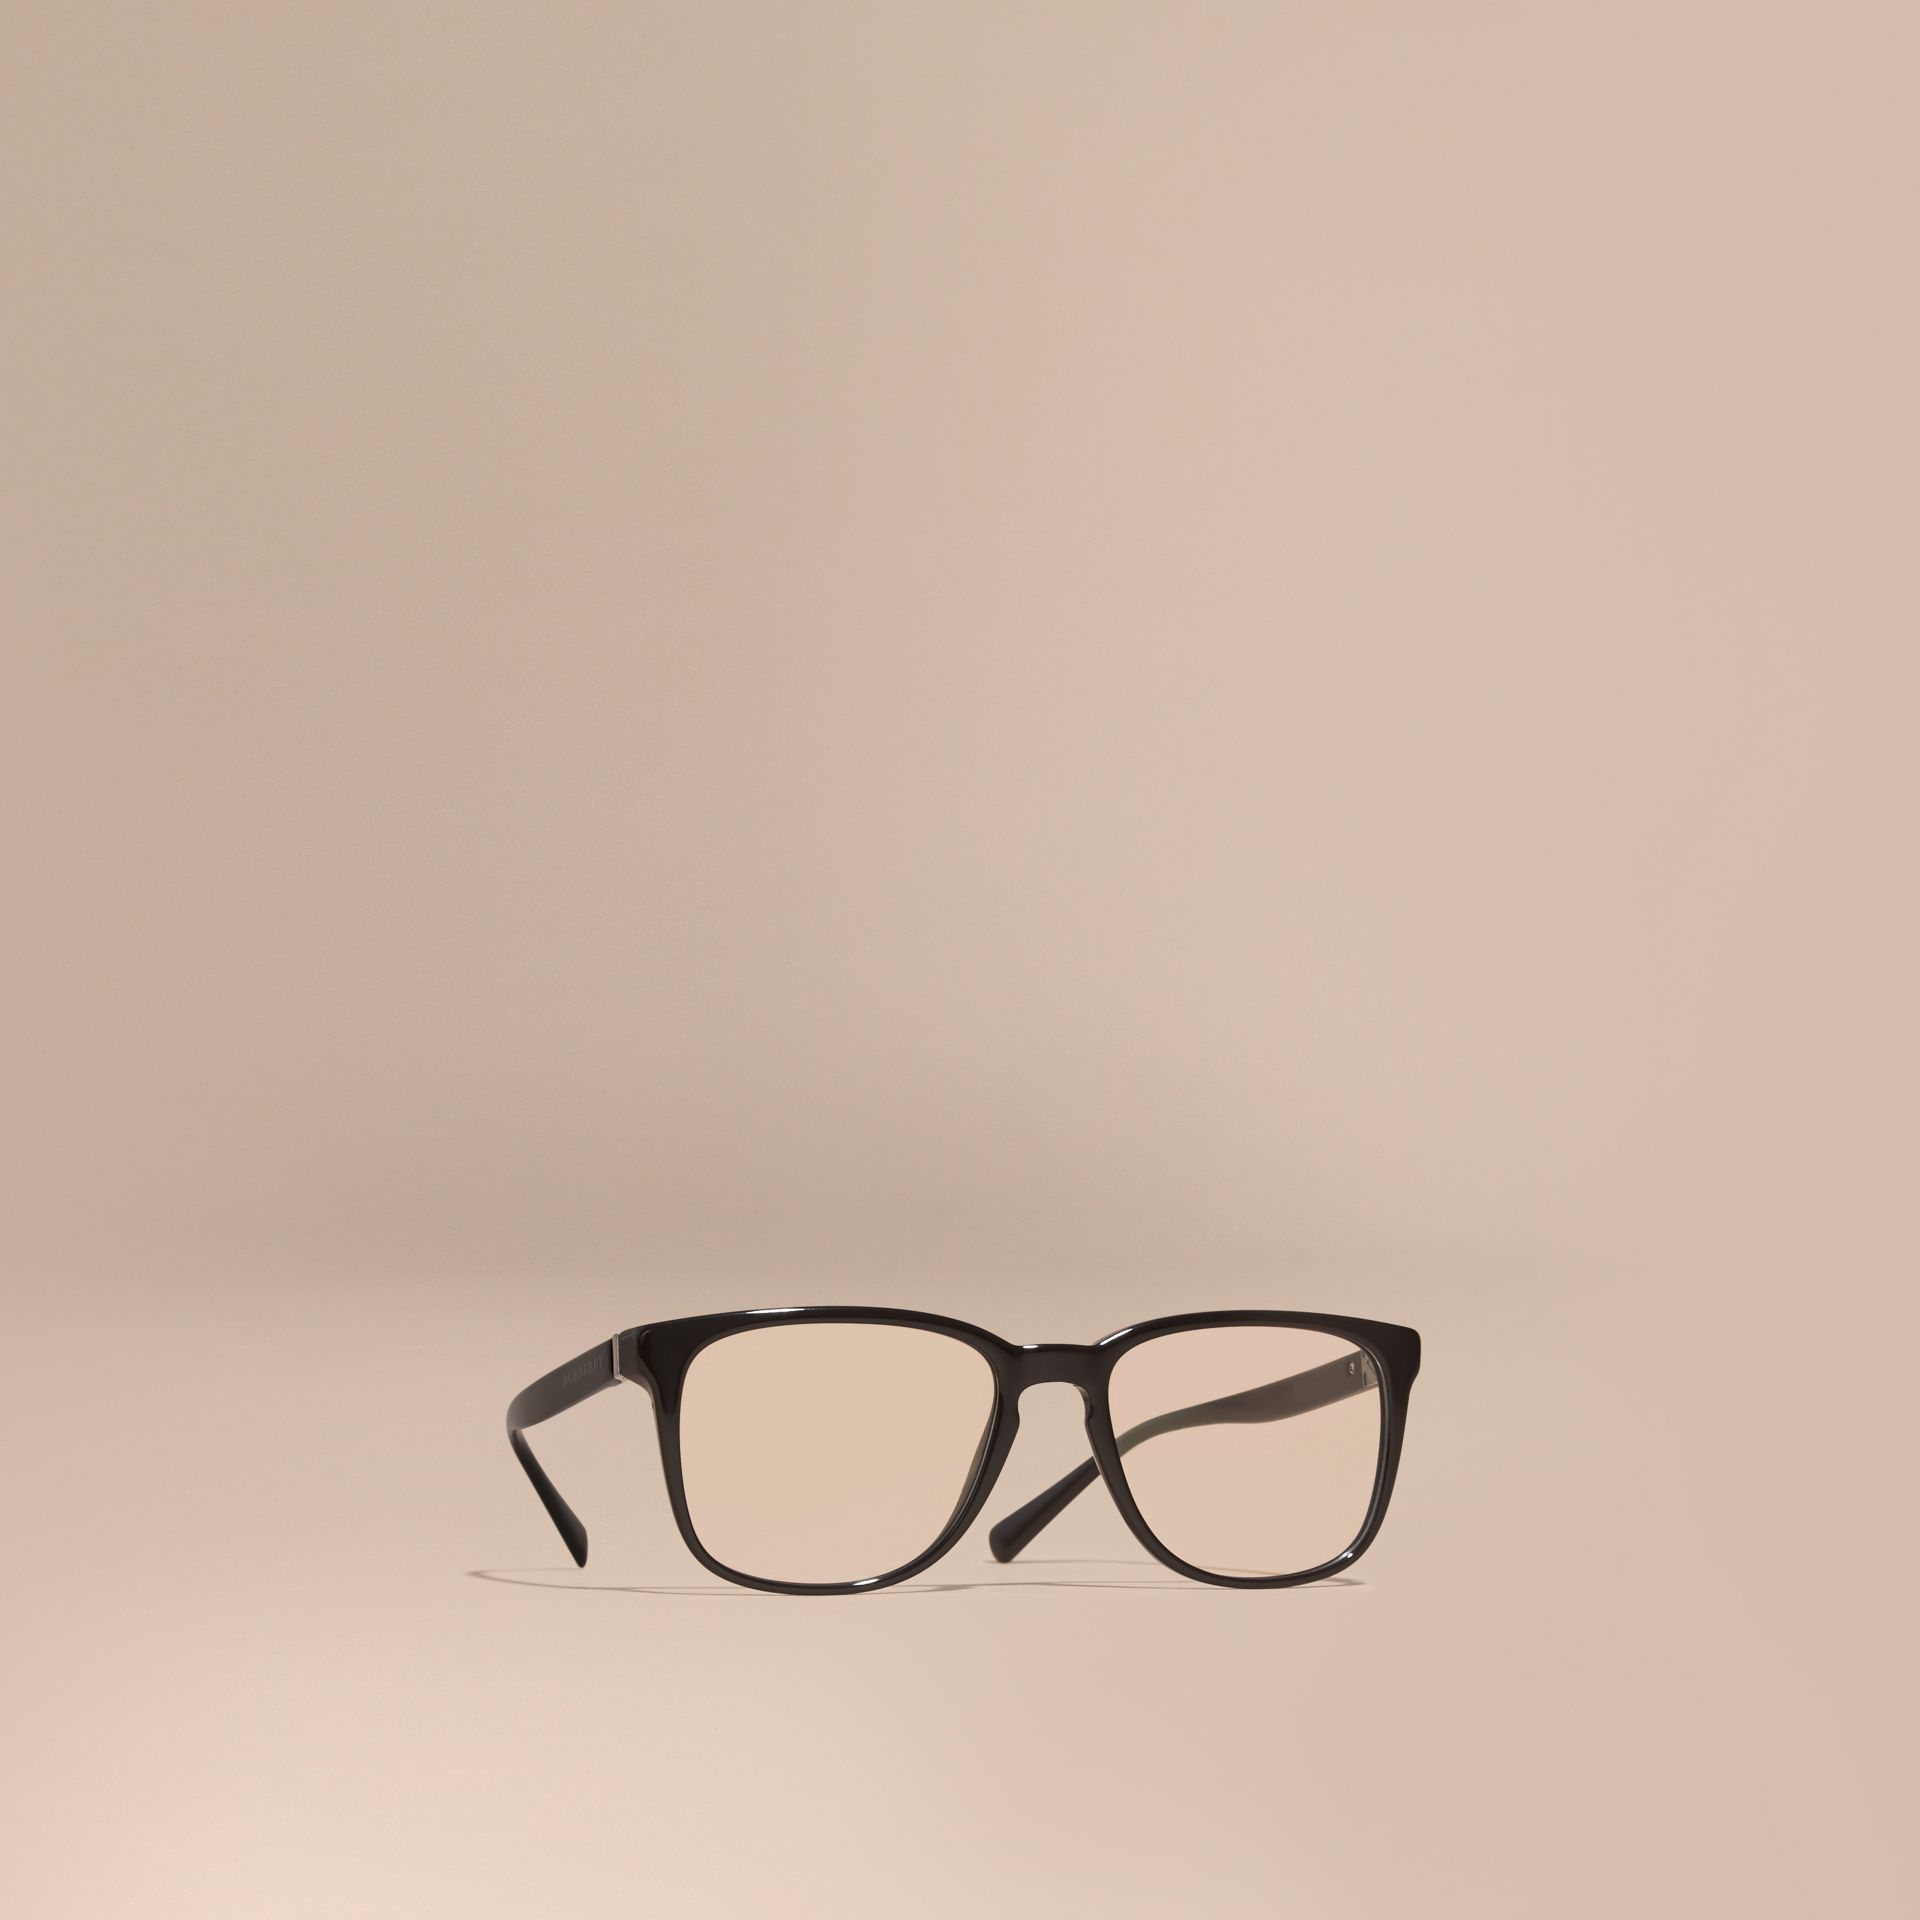 Square Optical Frames in Black - gallery image 1